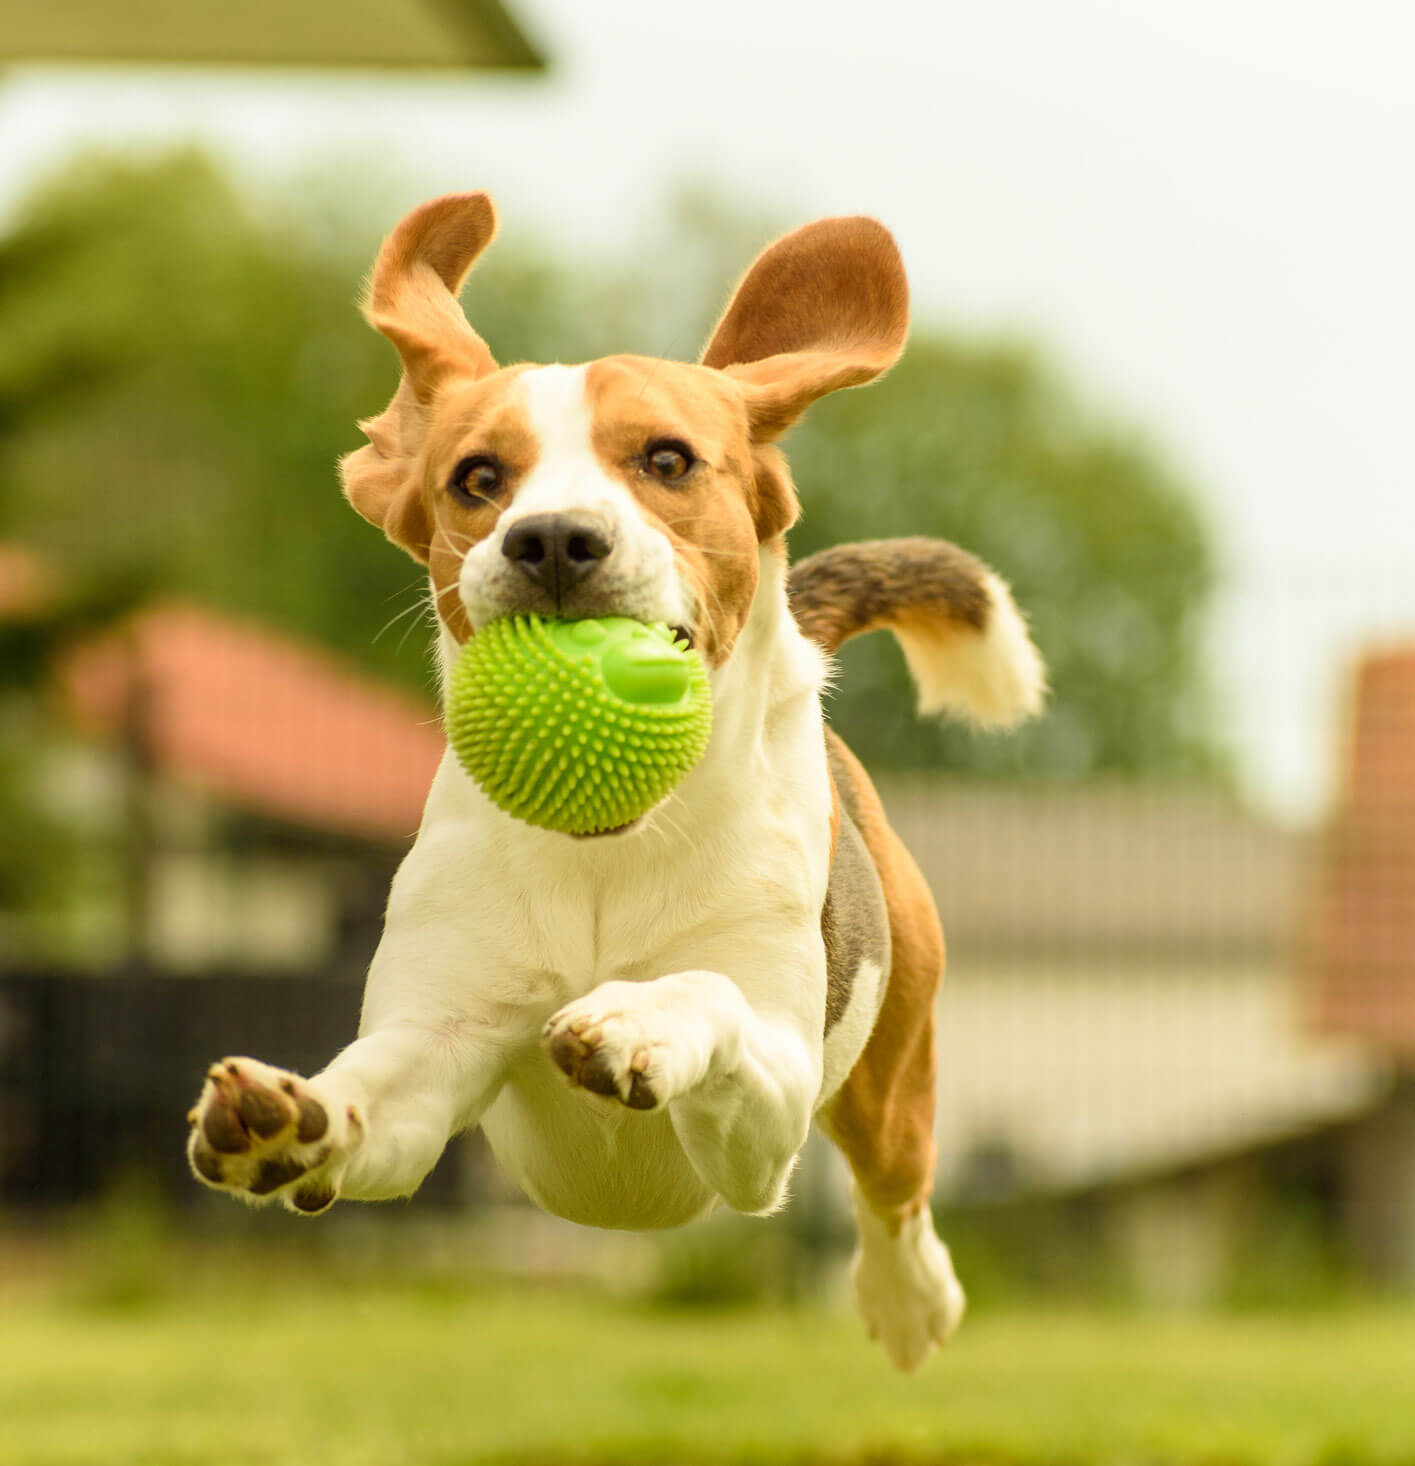 Happy dog jumping with ball